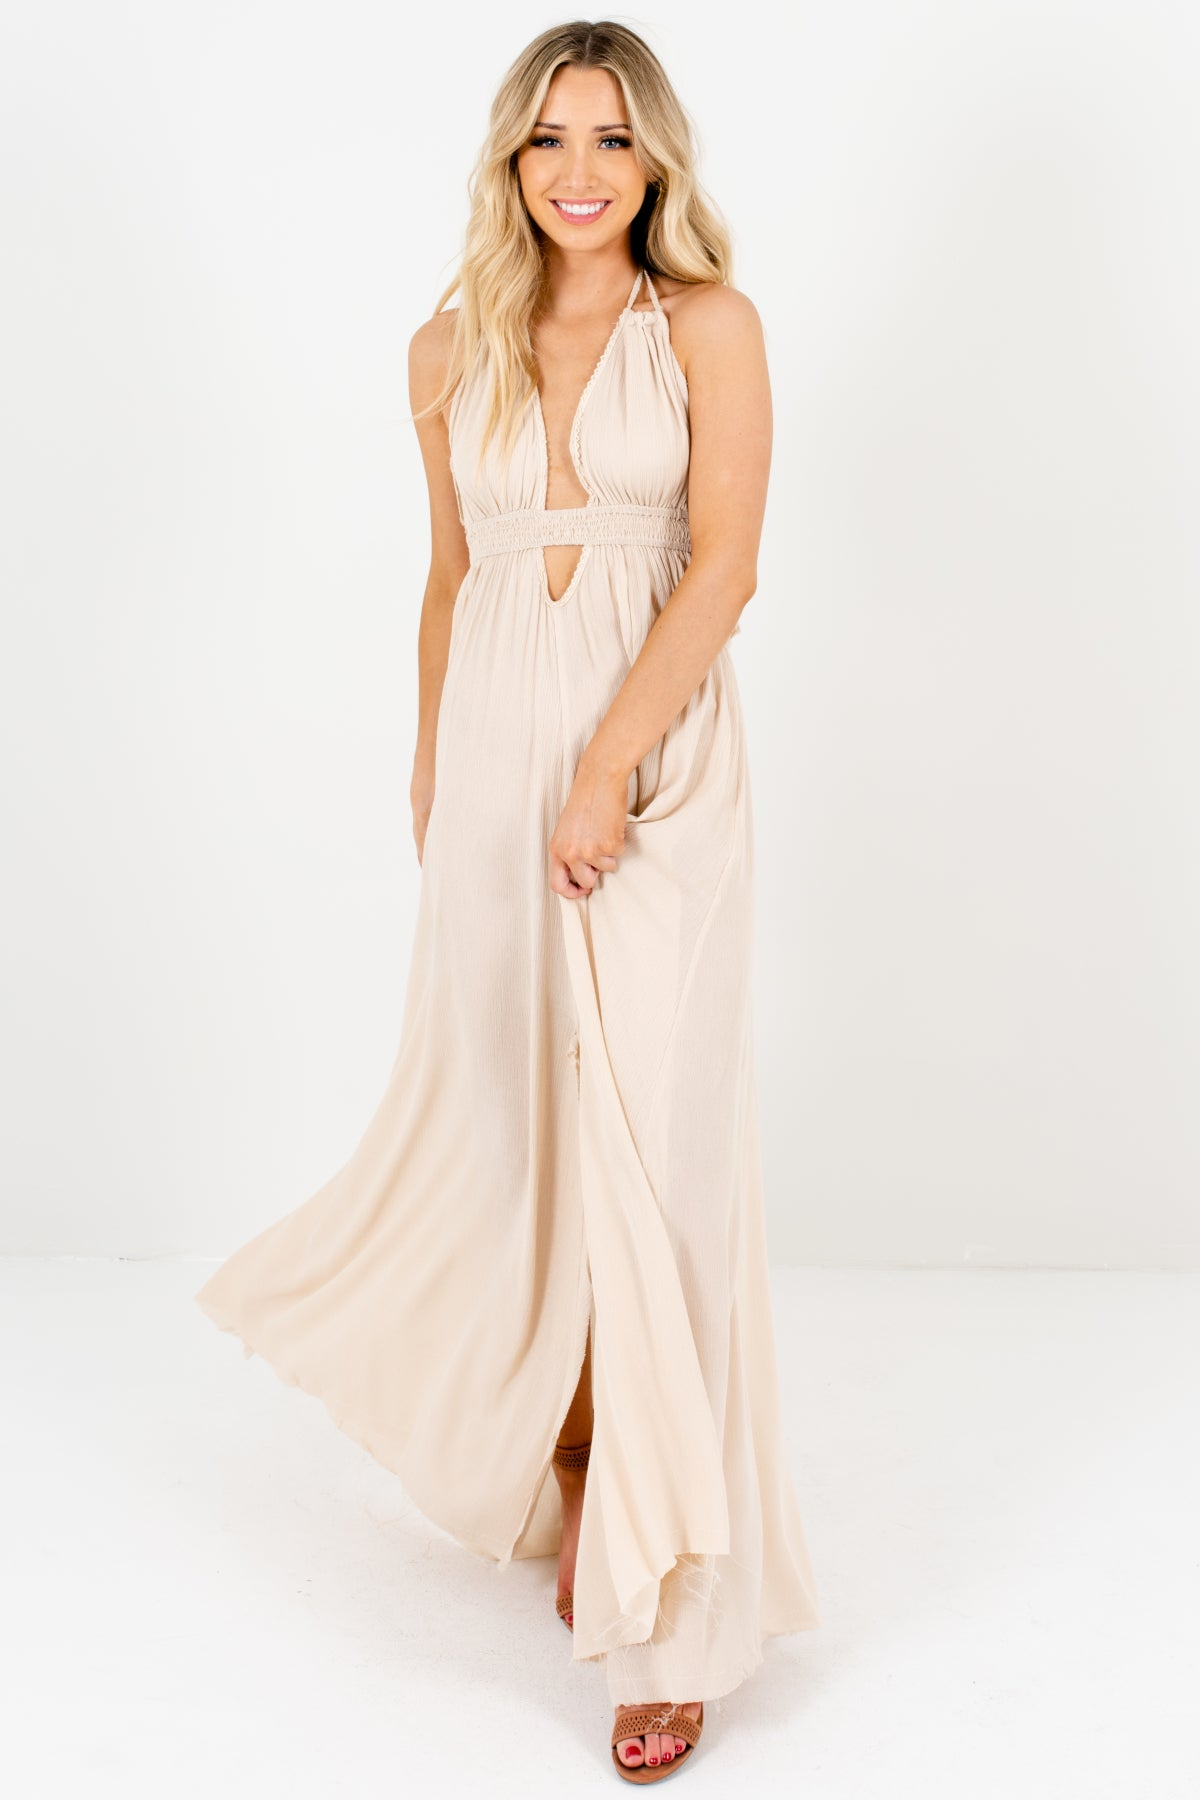 Beige Long Flowy Maxi Boutique Bohemian Dresses with Open Back and Tassels